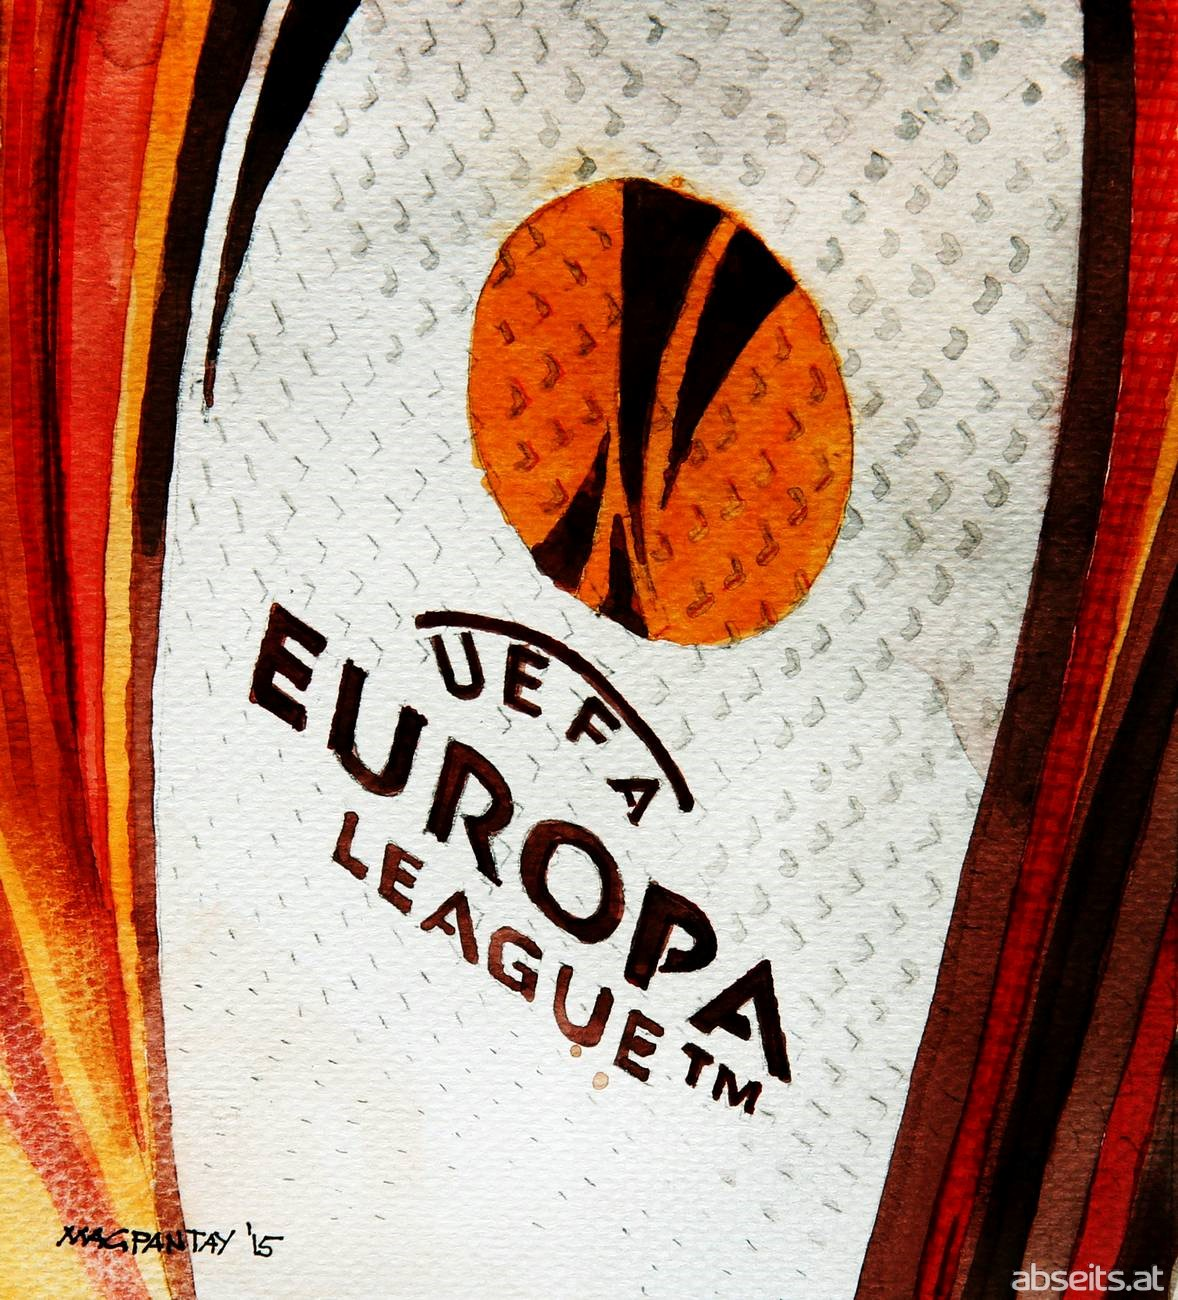 europa league qualifikation 2019